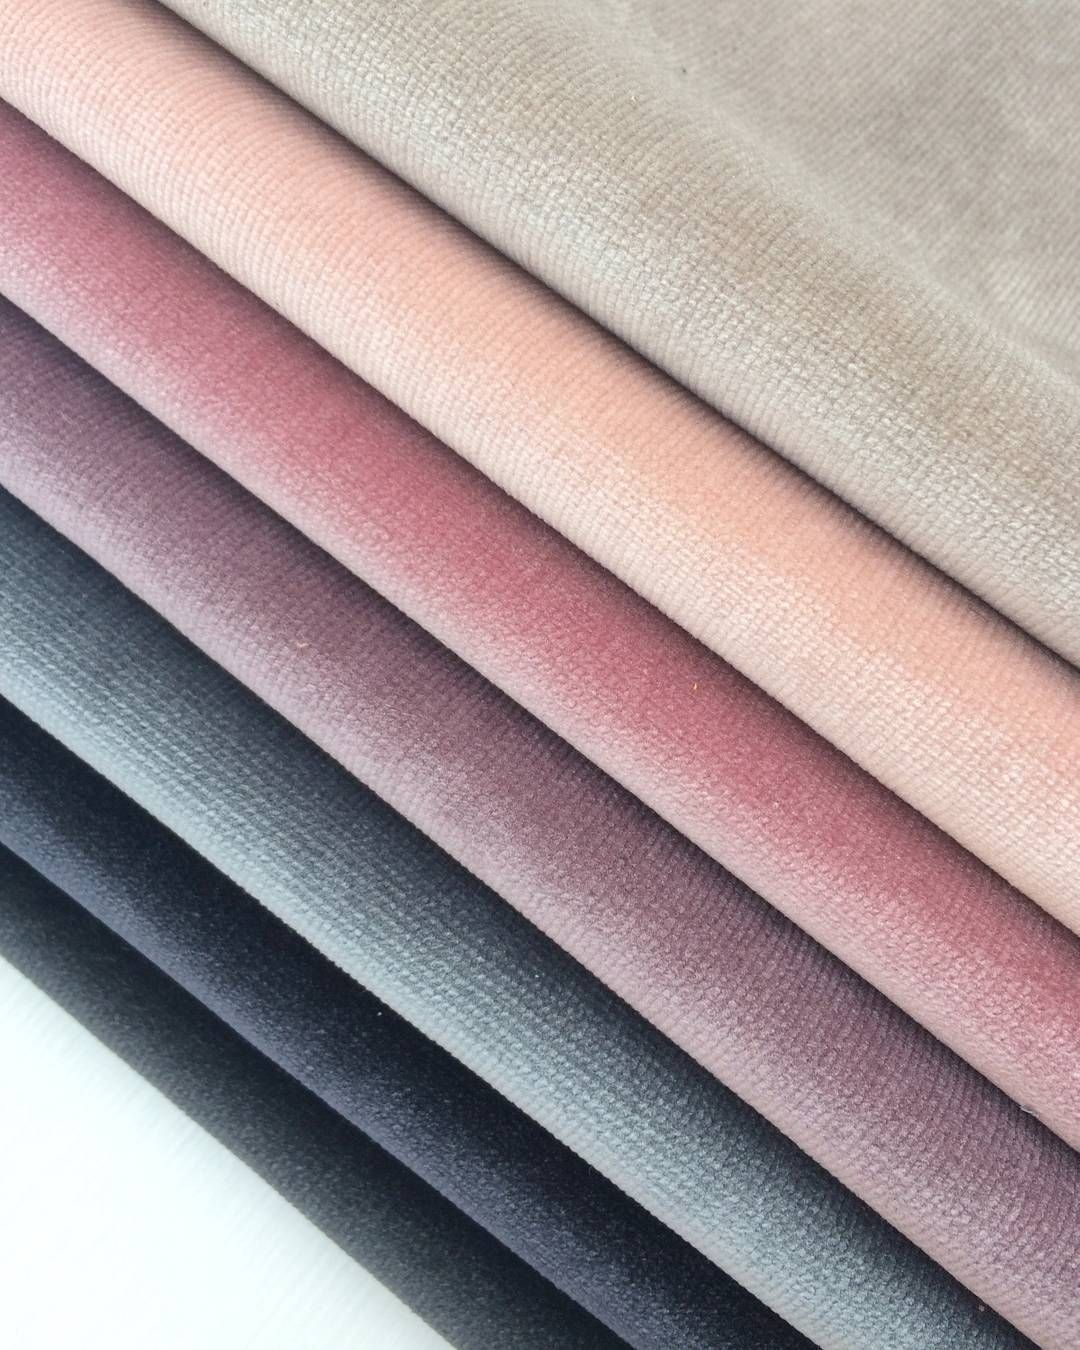 Navy Blue Bedroom Colors Dusty Pink Bedroom Accessories Small Bedroom Chairs Ikea Good Bedroom Color Schemes: A Combination Of Fresh Ballet Pink, Dusty Nude, Blush And